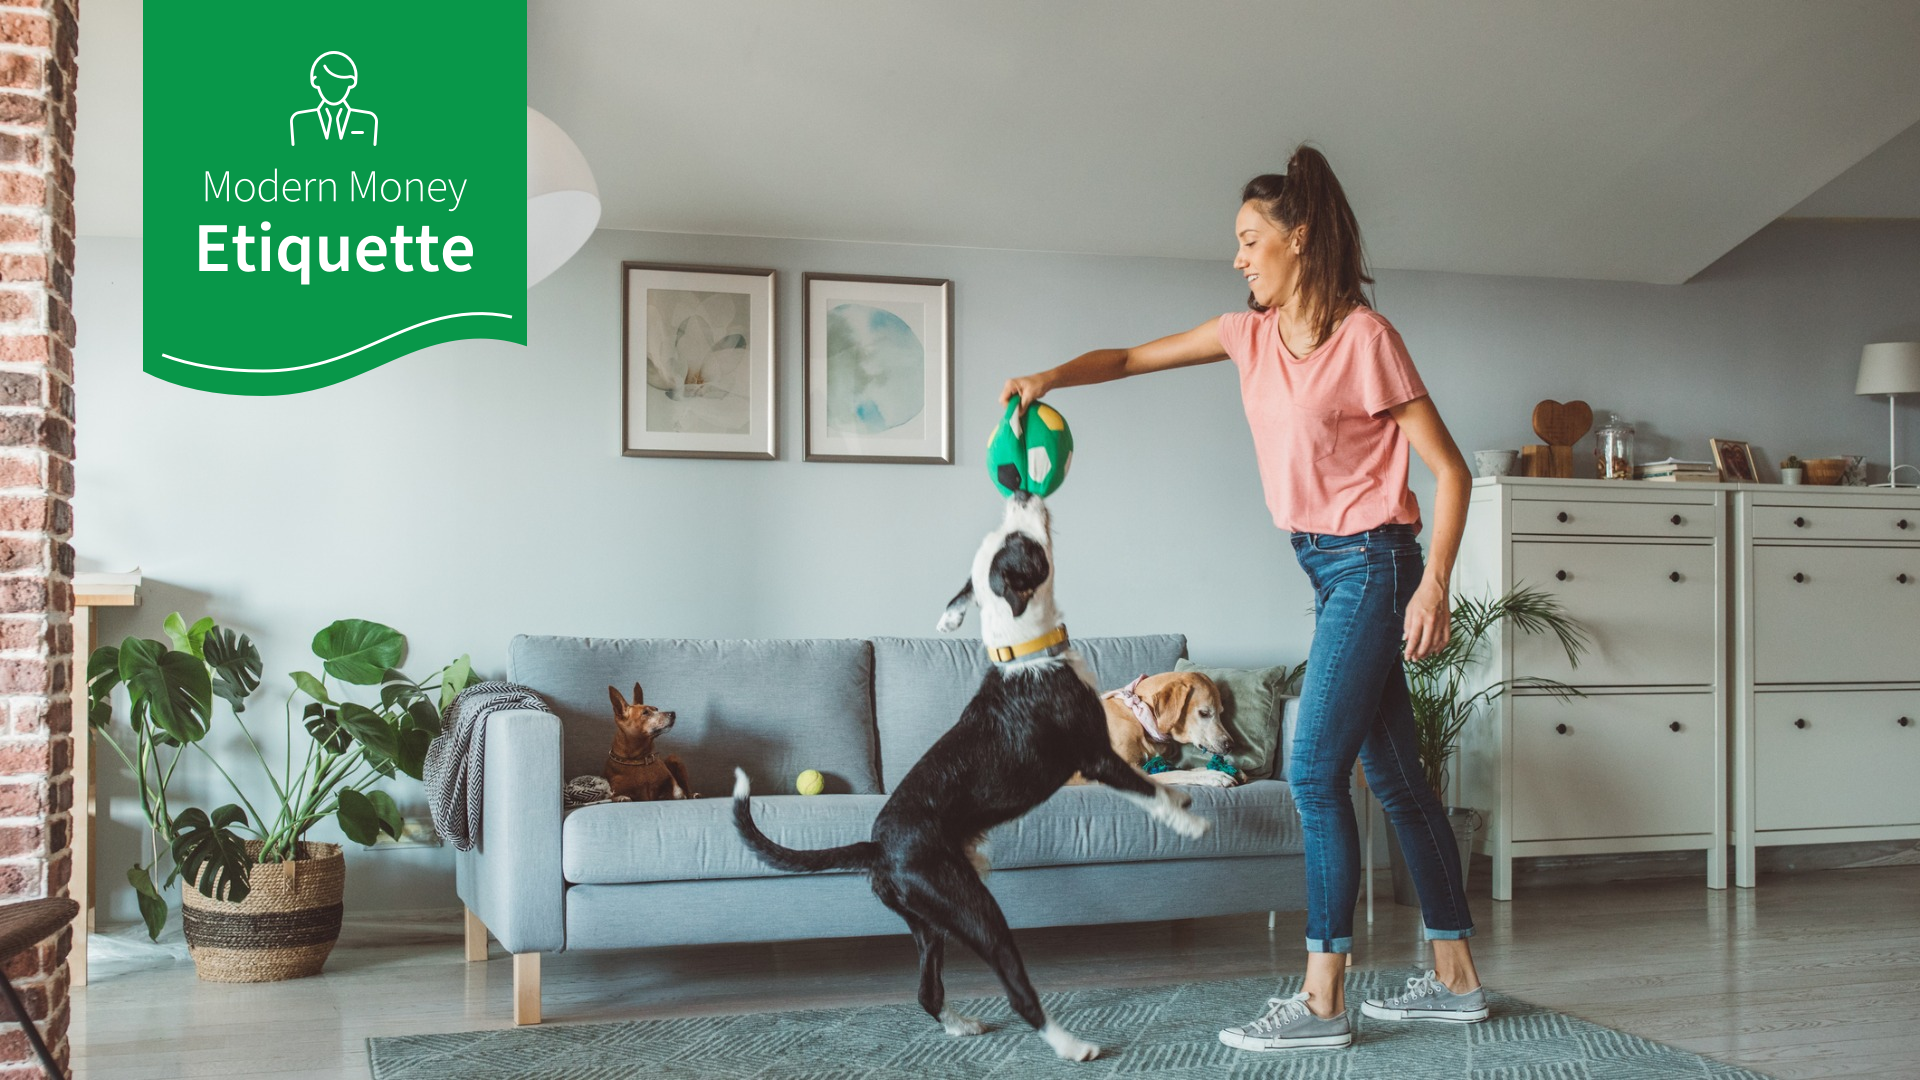 How Much Do You Pay a Friend for Pet-Sitting and Other Household Favors When You're Out of Town?